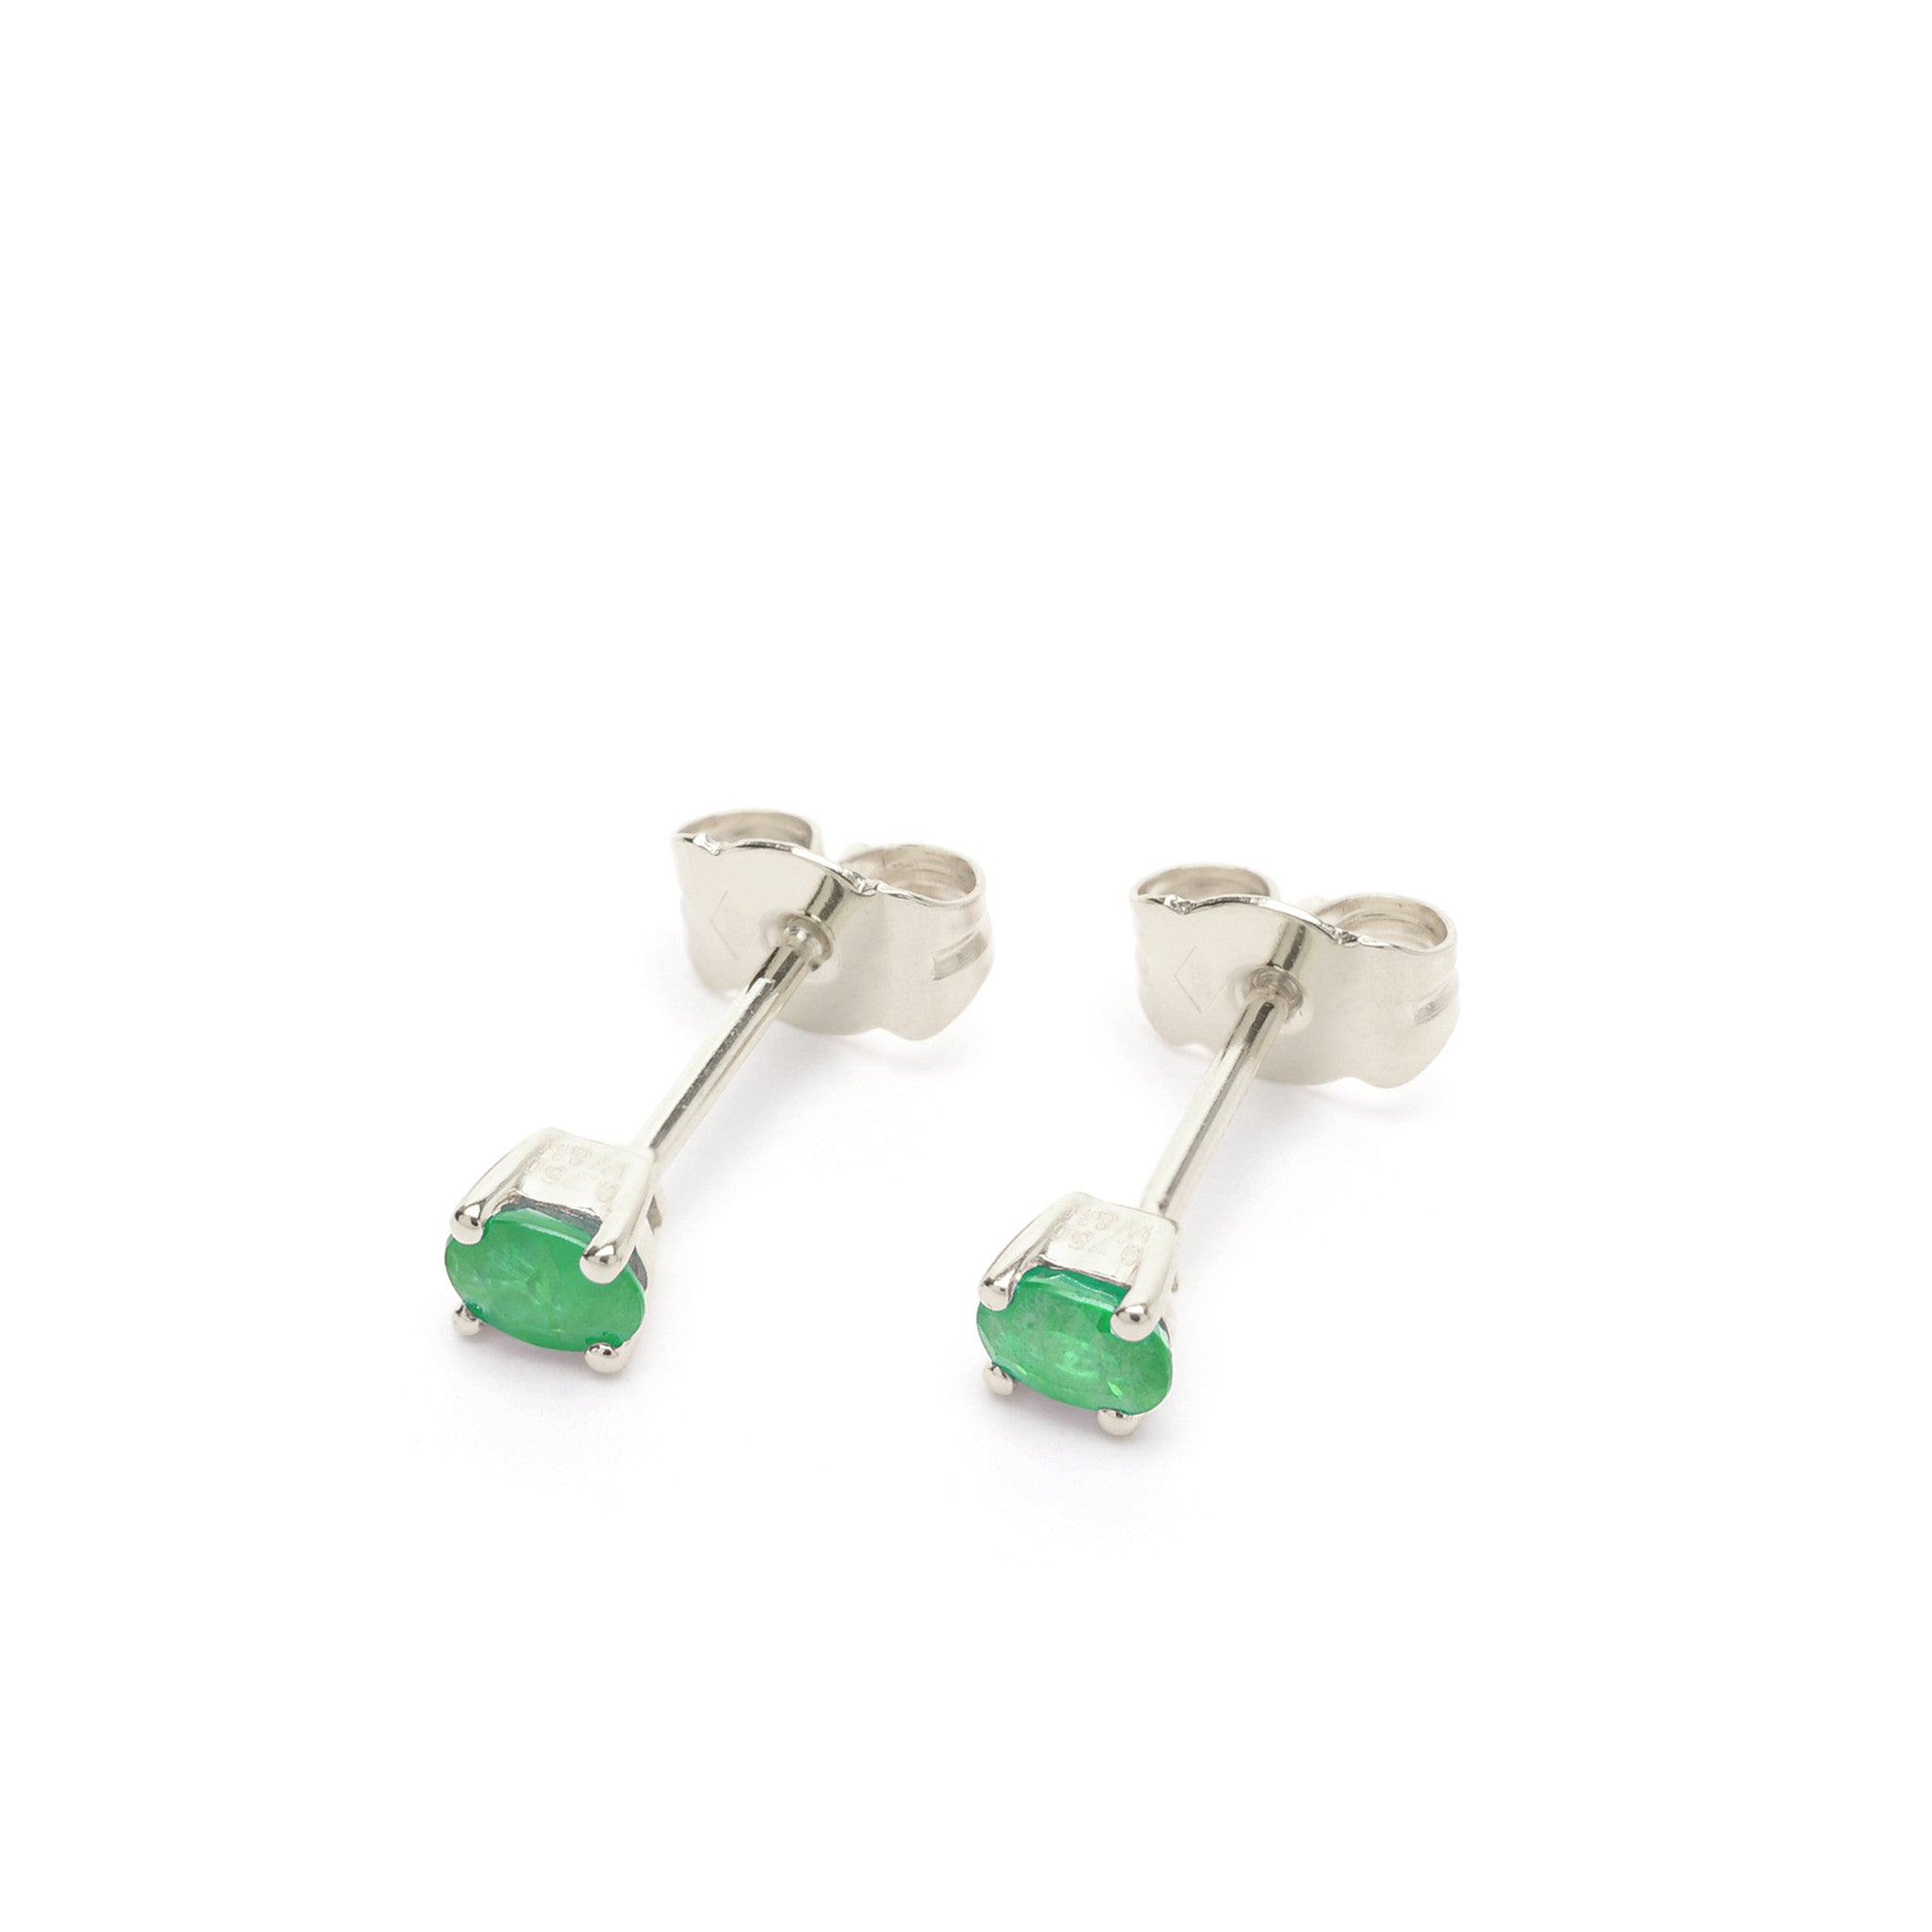 18kt Gold Stud Earrings with Emerald